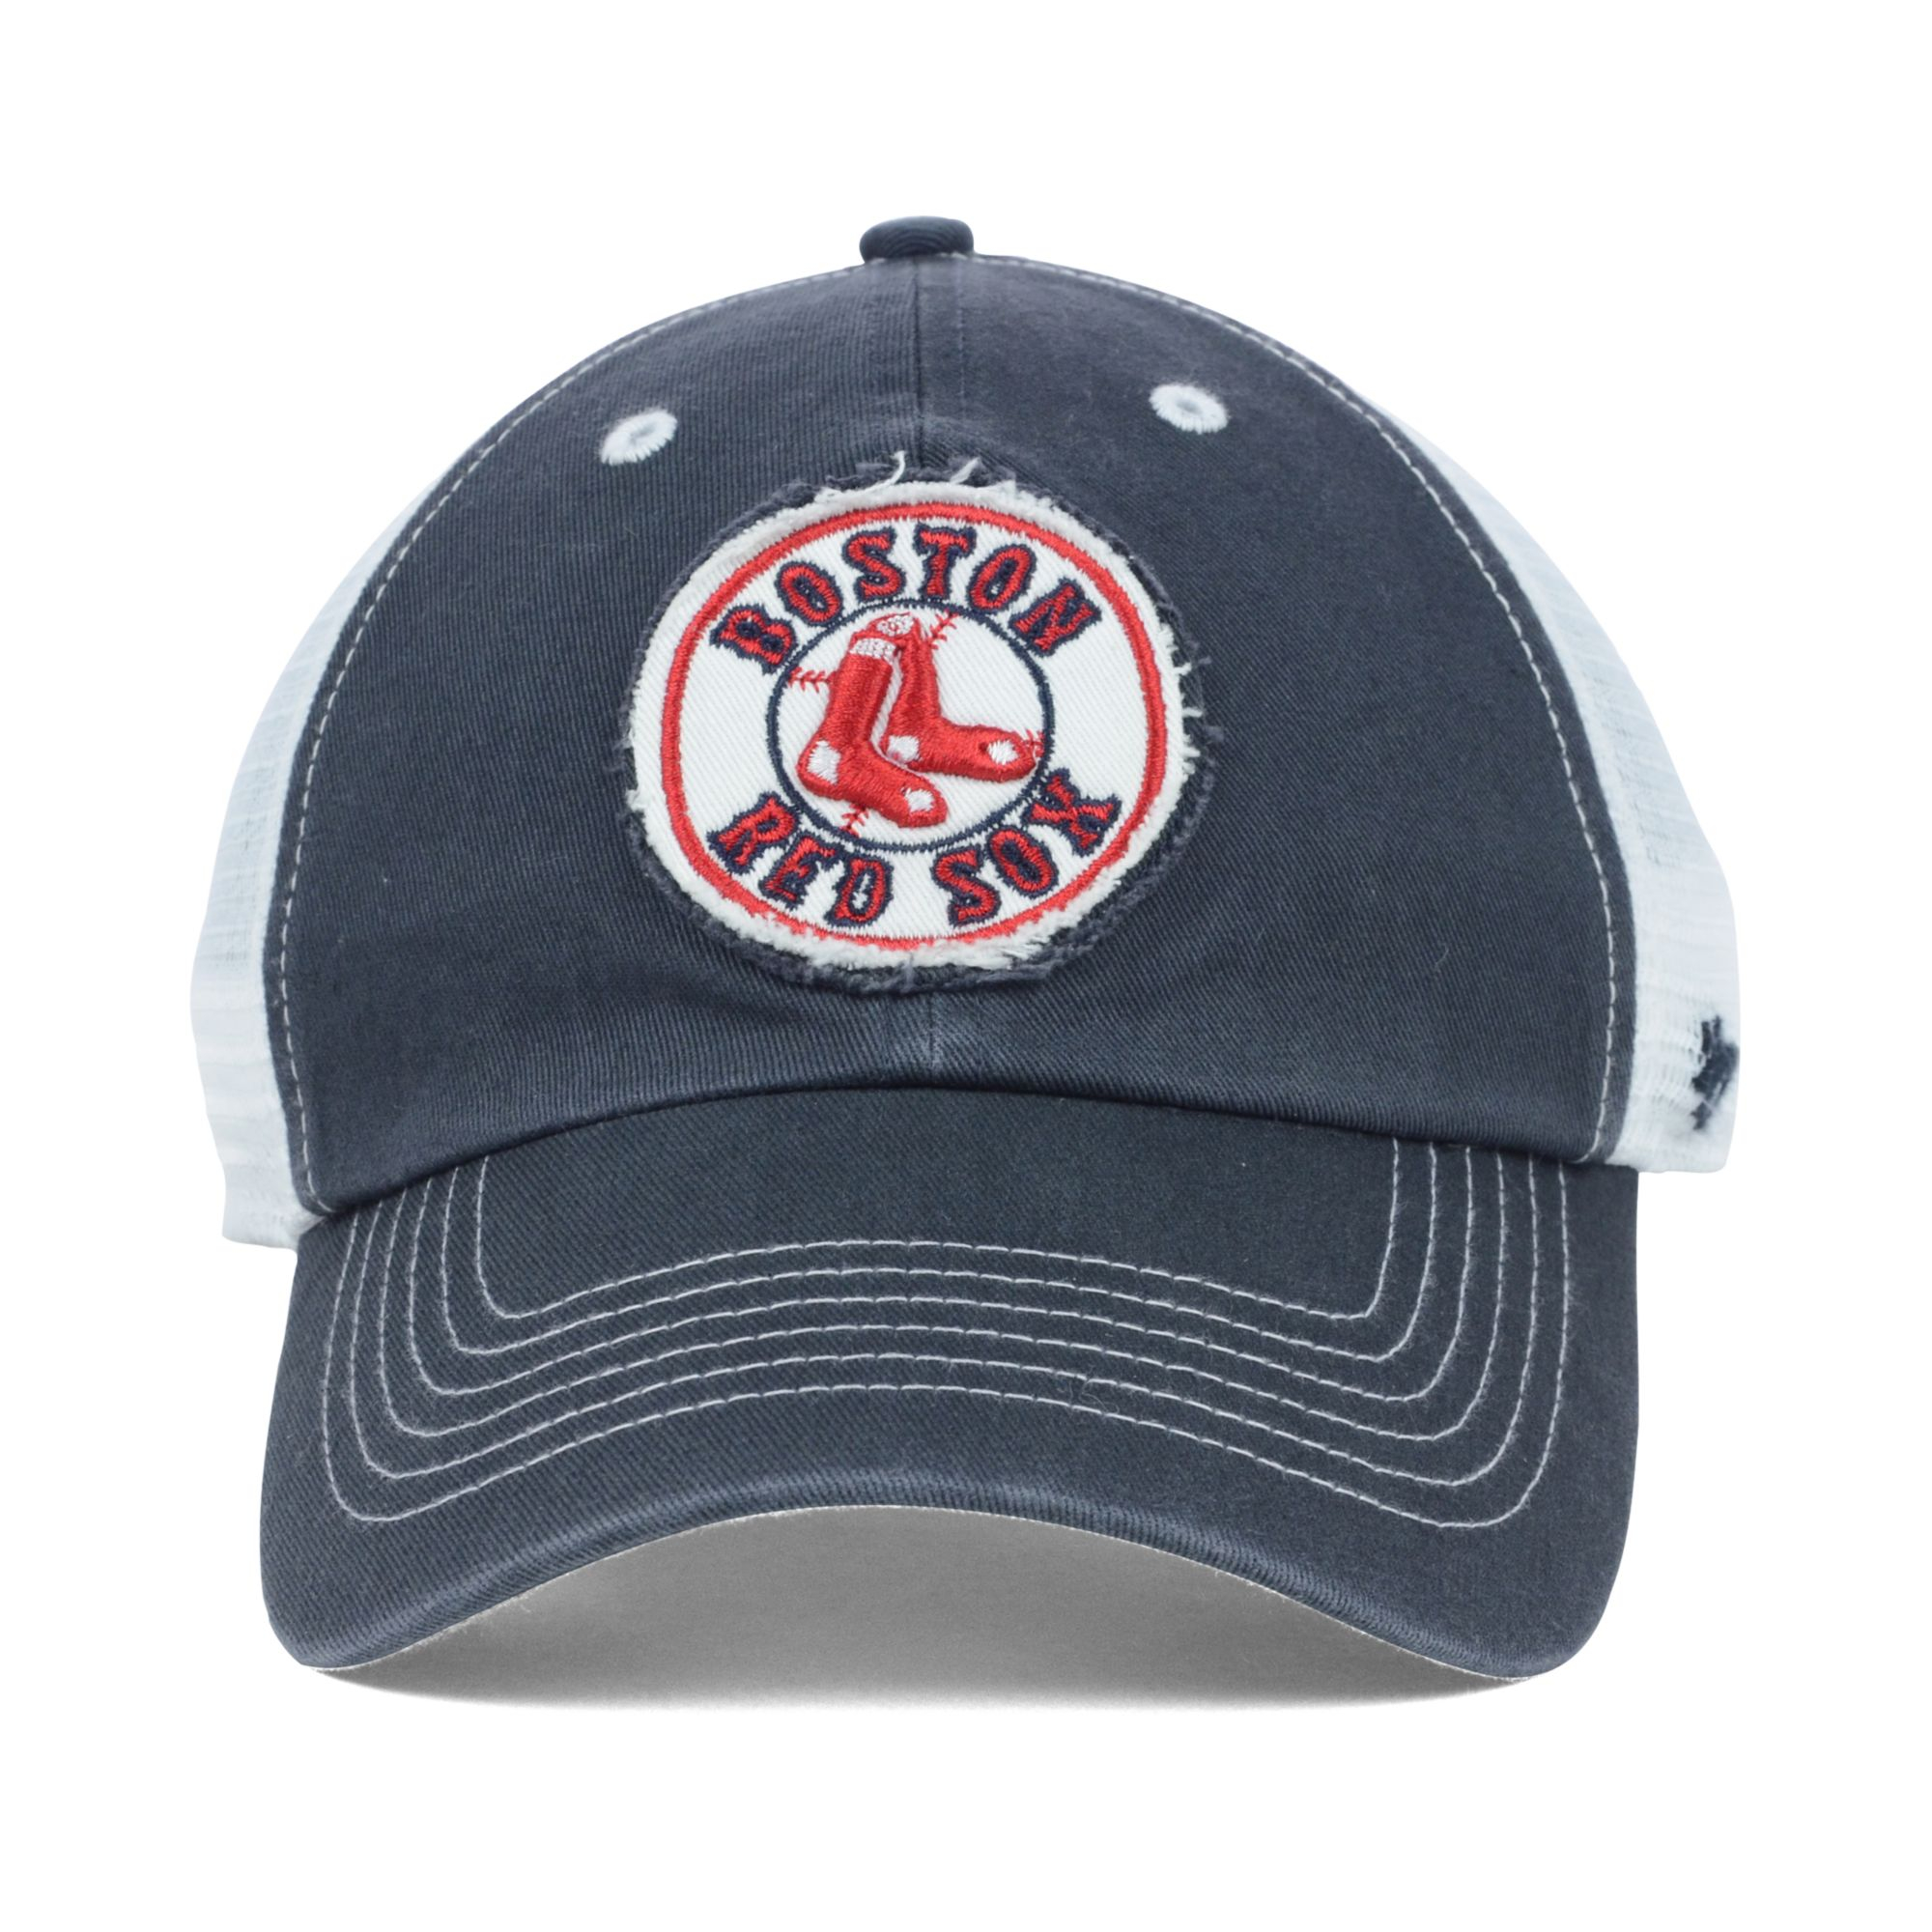 Lyst - 47 Brand Boston Red Sox Blue Mountain Franchise Cap in Blue ... a78f80f0f59